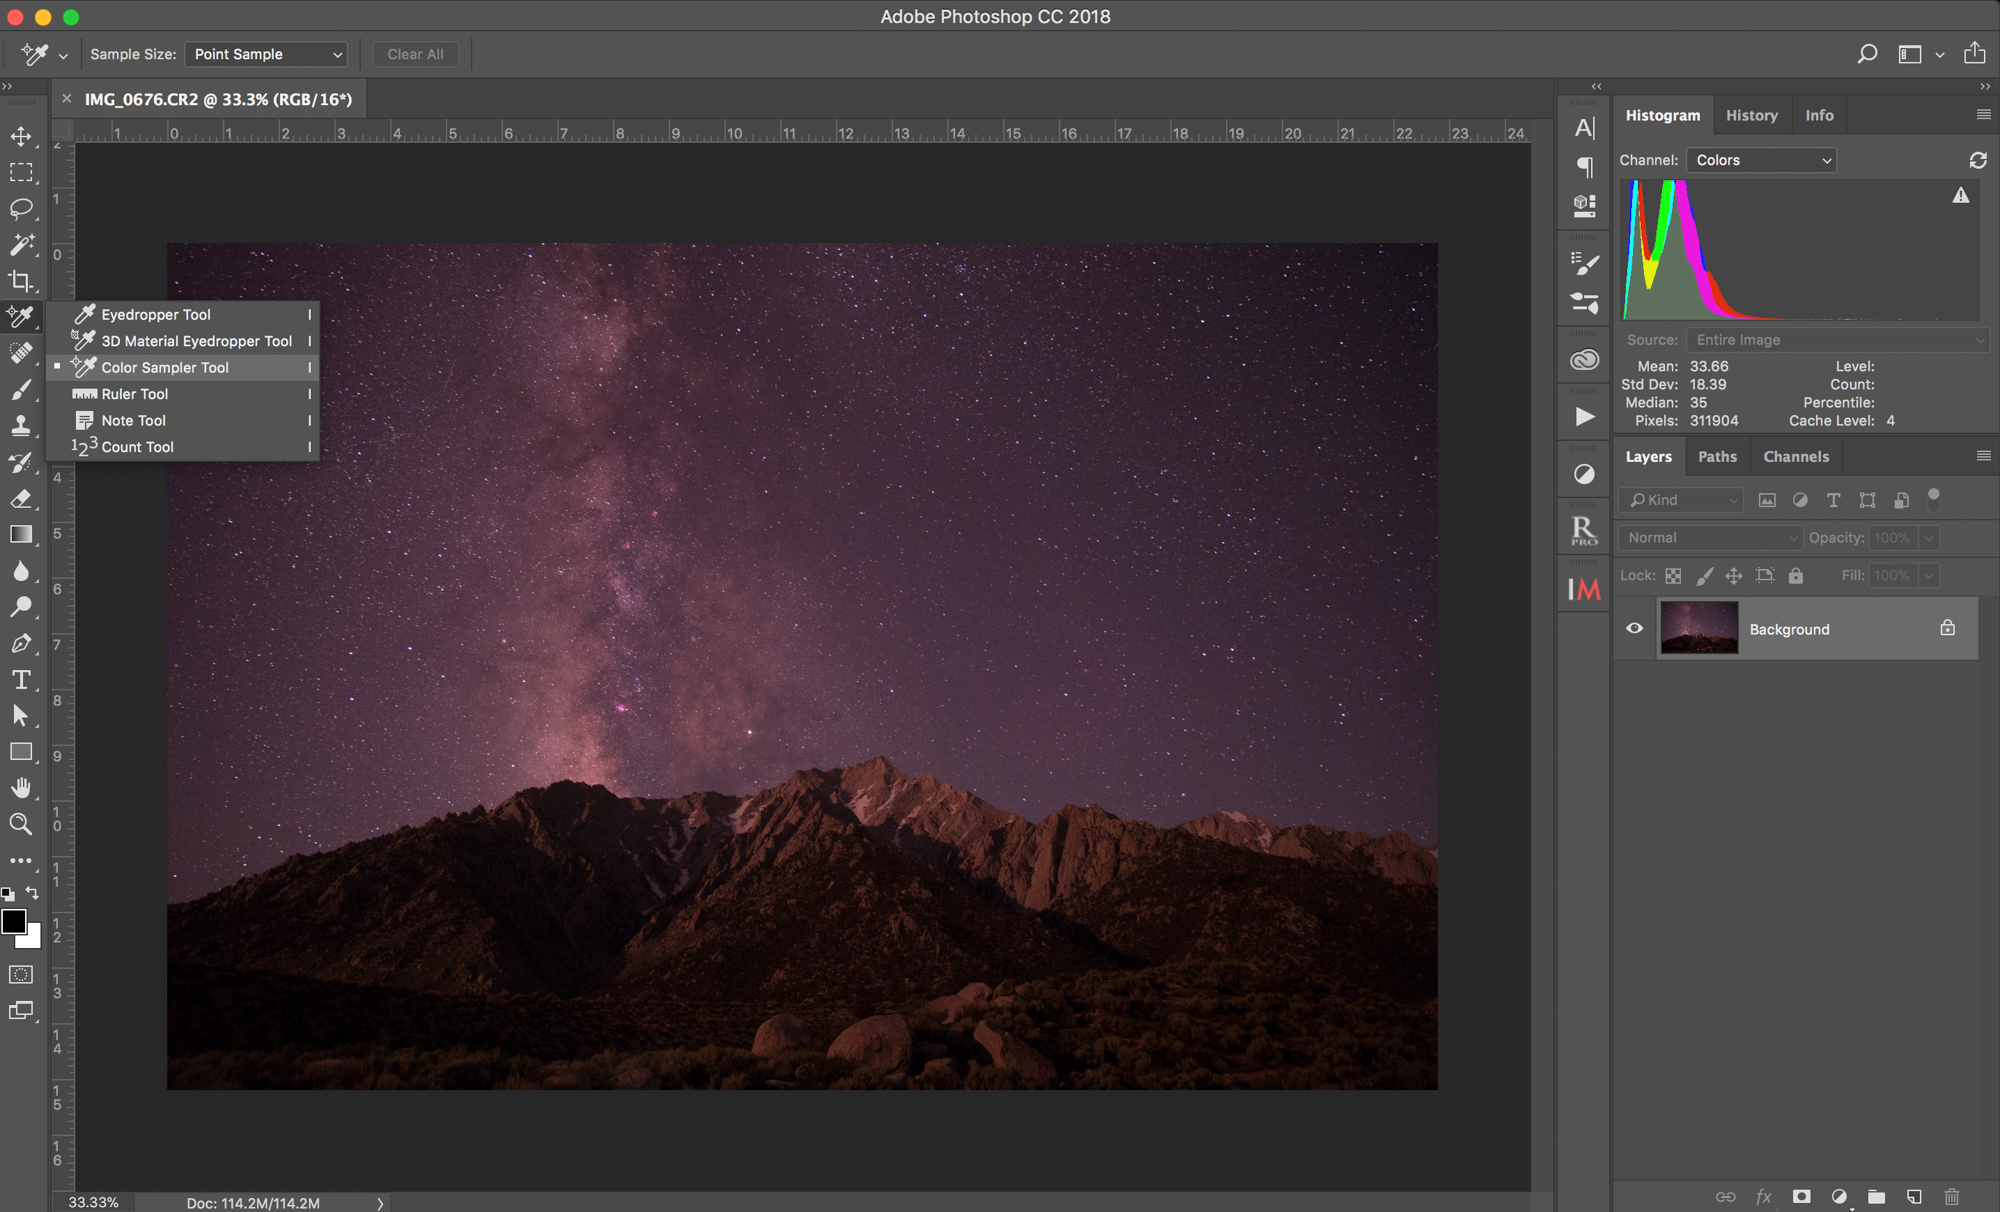 Selecting the colour sampler tool in Photoshop